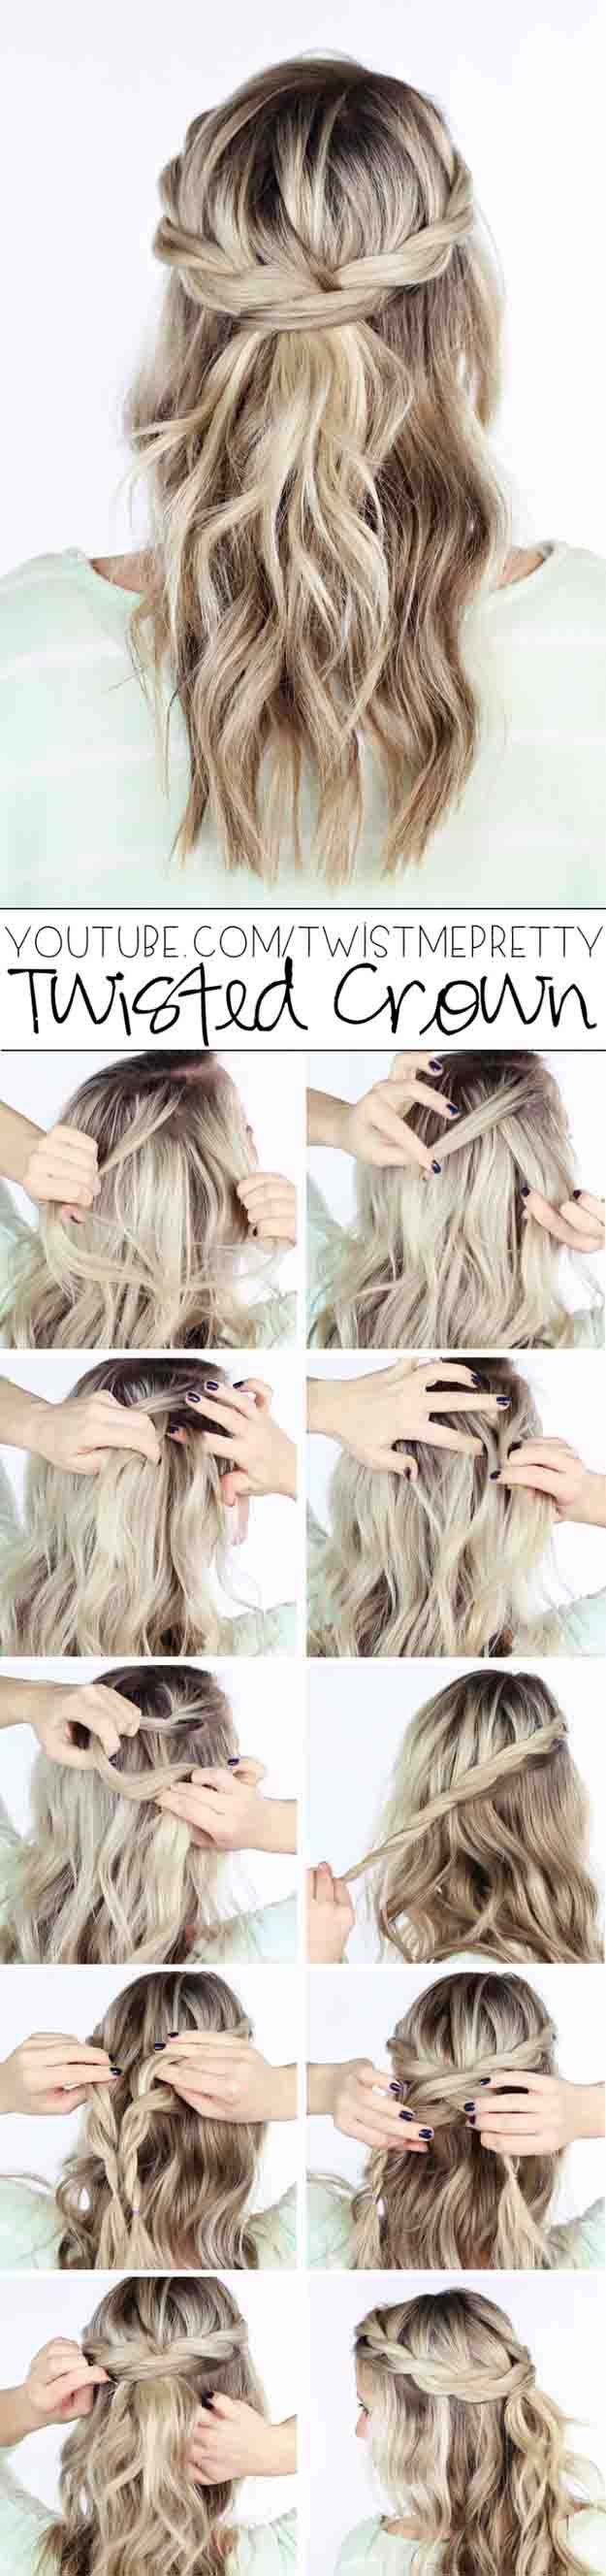 Best Hair Braiding Tutorials - TWISTED CROWN BRAID TUTORIAL - Step By Step Easy ...